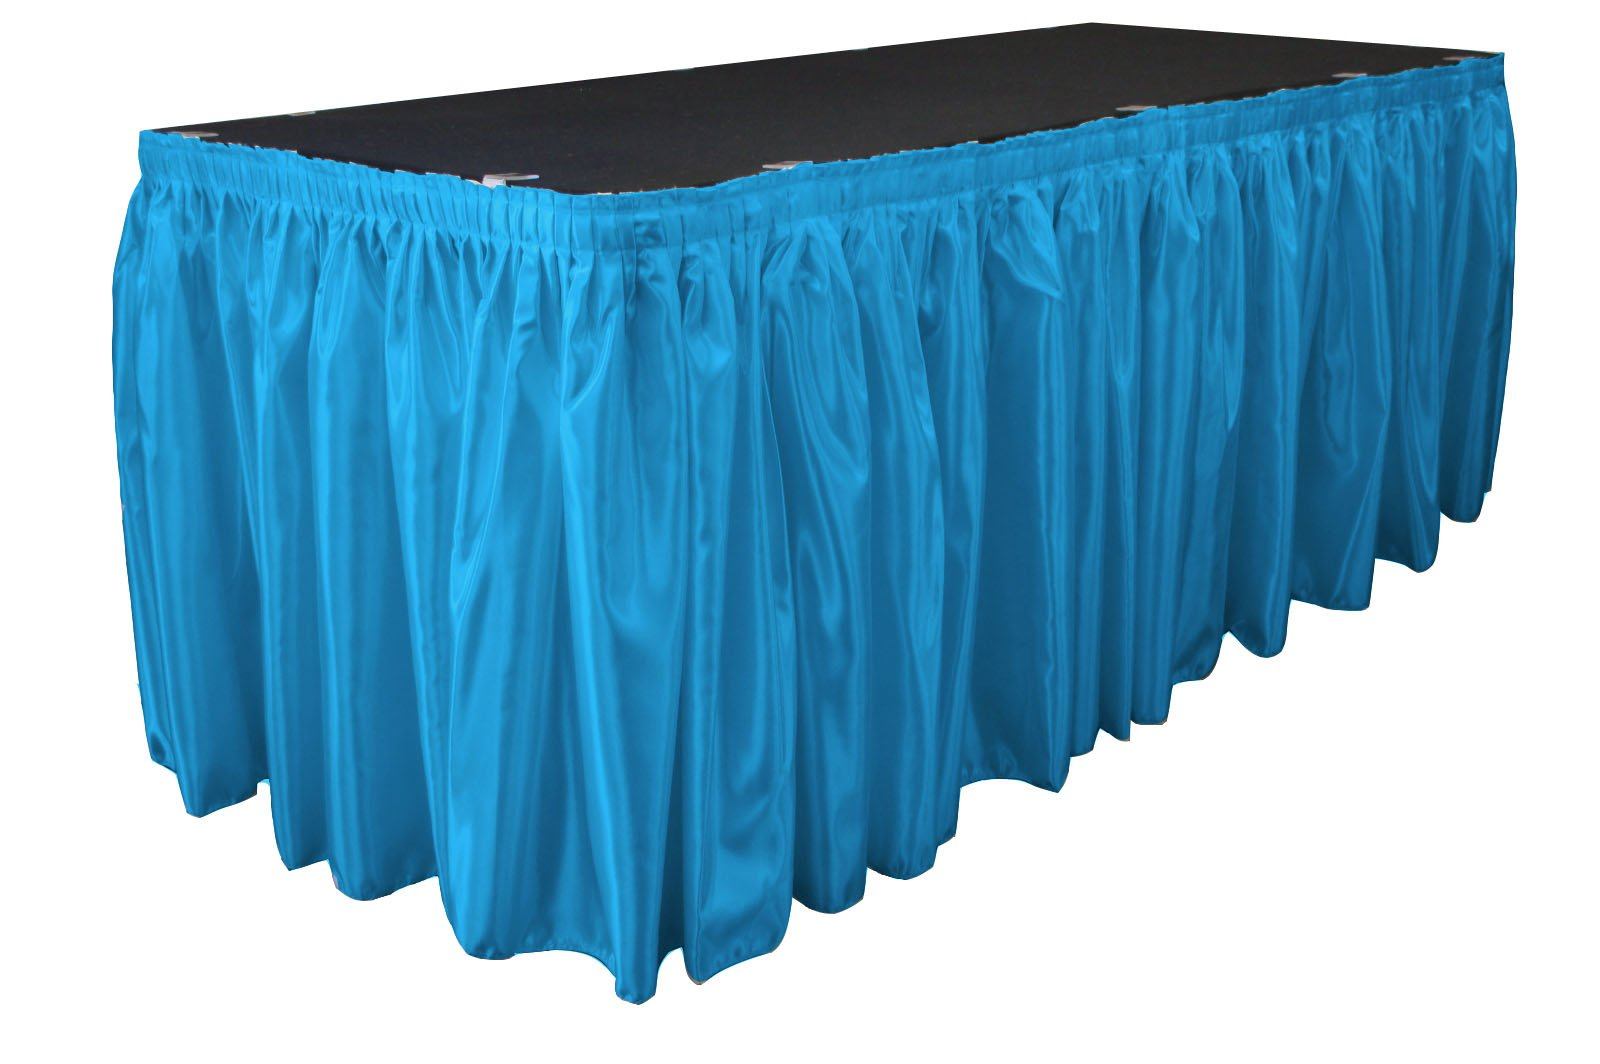 LA Linen Bridal Satin Pleated Table Skirt with 10 Large Clips, 14-Feet by 29-Inch, Turquoise by LA Linen